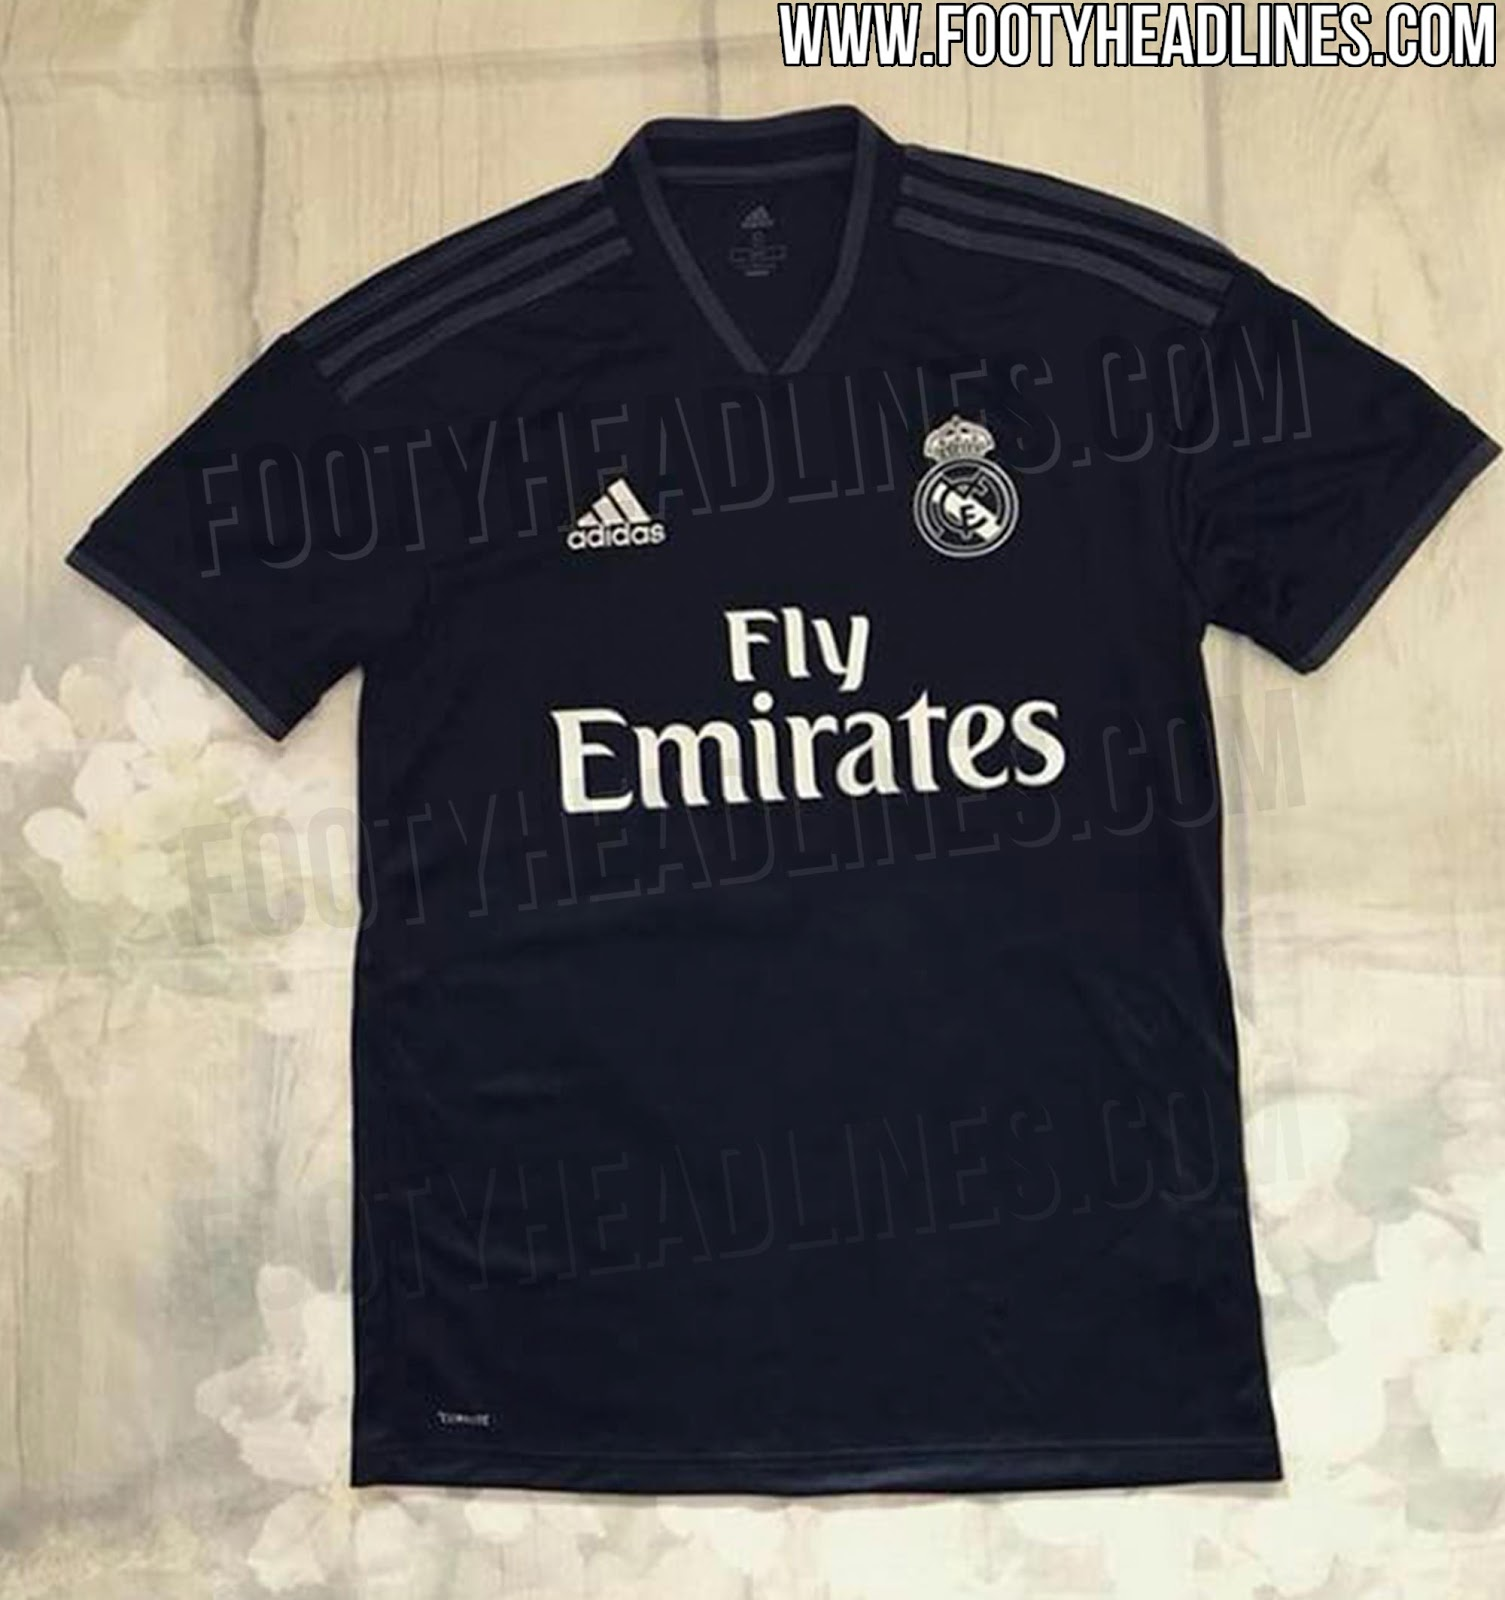 6c79c23d95 Site divulga suposta nova camisa reserva do Real Madrid - 20 05 2005 ...